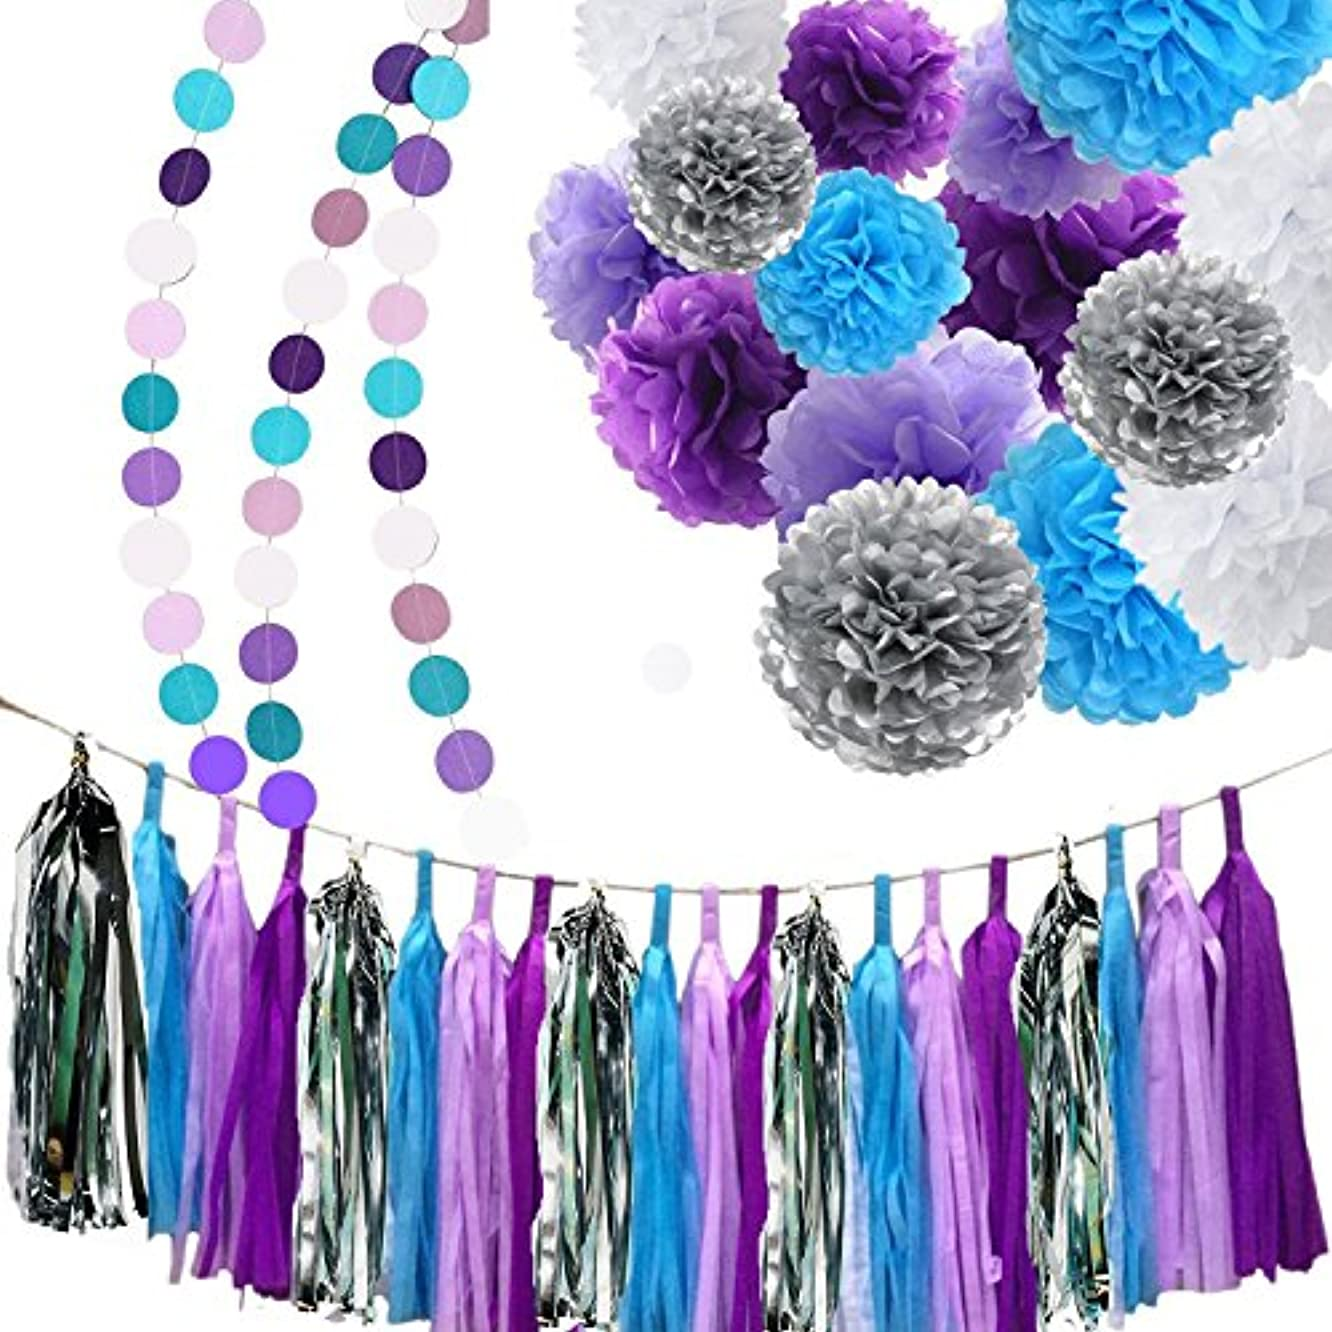 Bridal Shower Decorations Purple White Silver TIssue Pom Pom Amaranth Purple Silver Circle Paper Garland for Baby Shower Decorations/Birthday Decorations